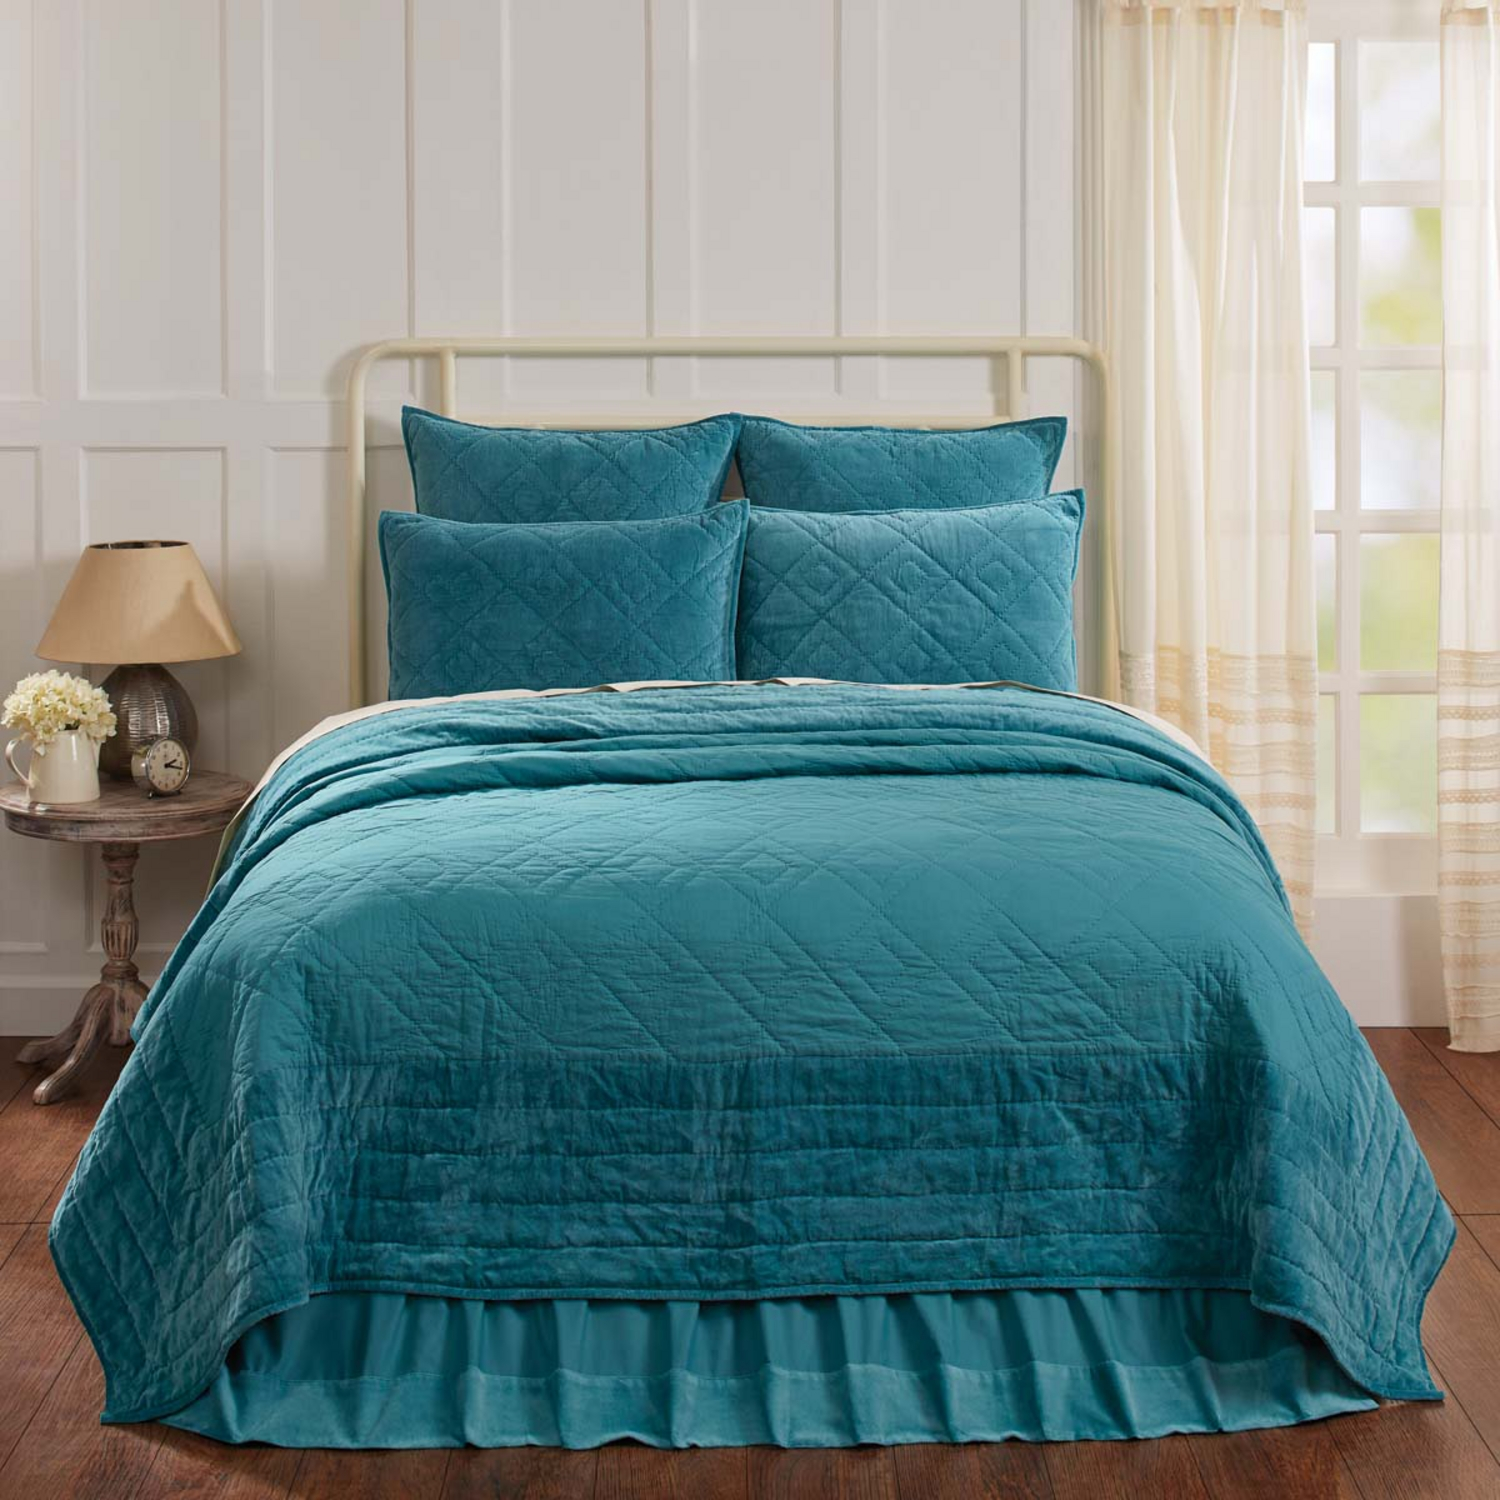 Eleanor Teal By Vhc Brands Quilts Beddingsuperstore Com